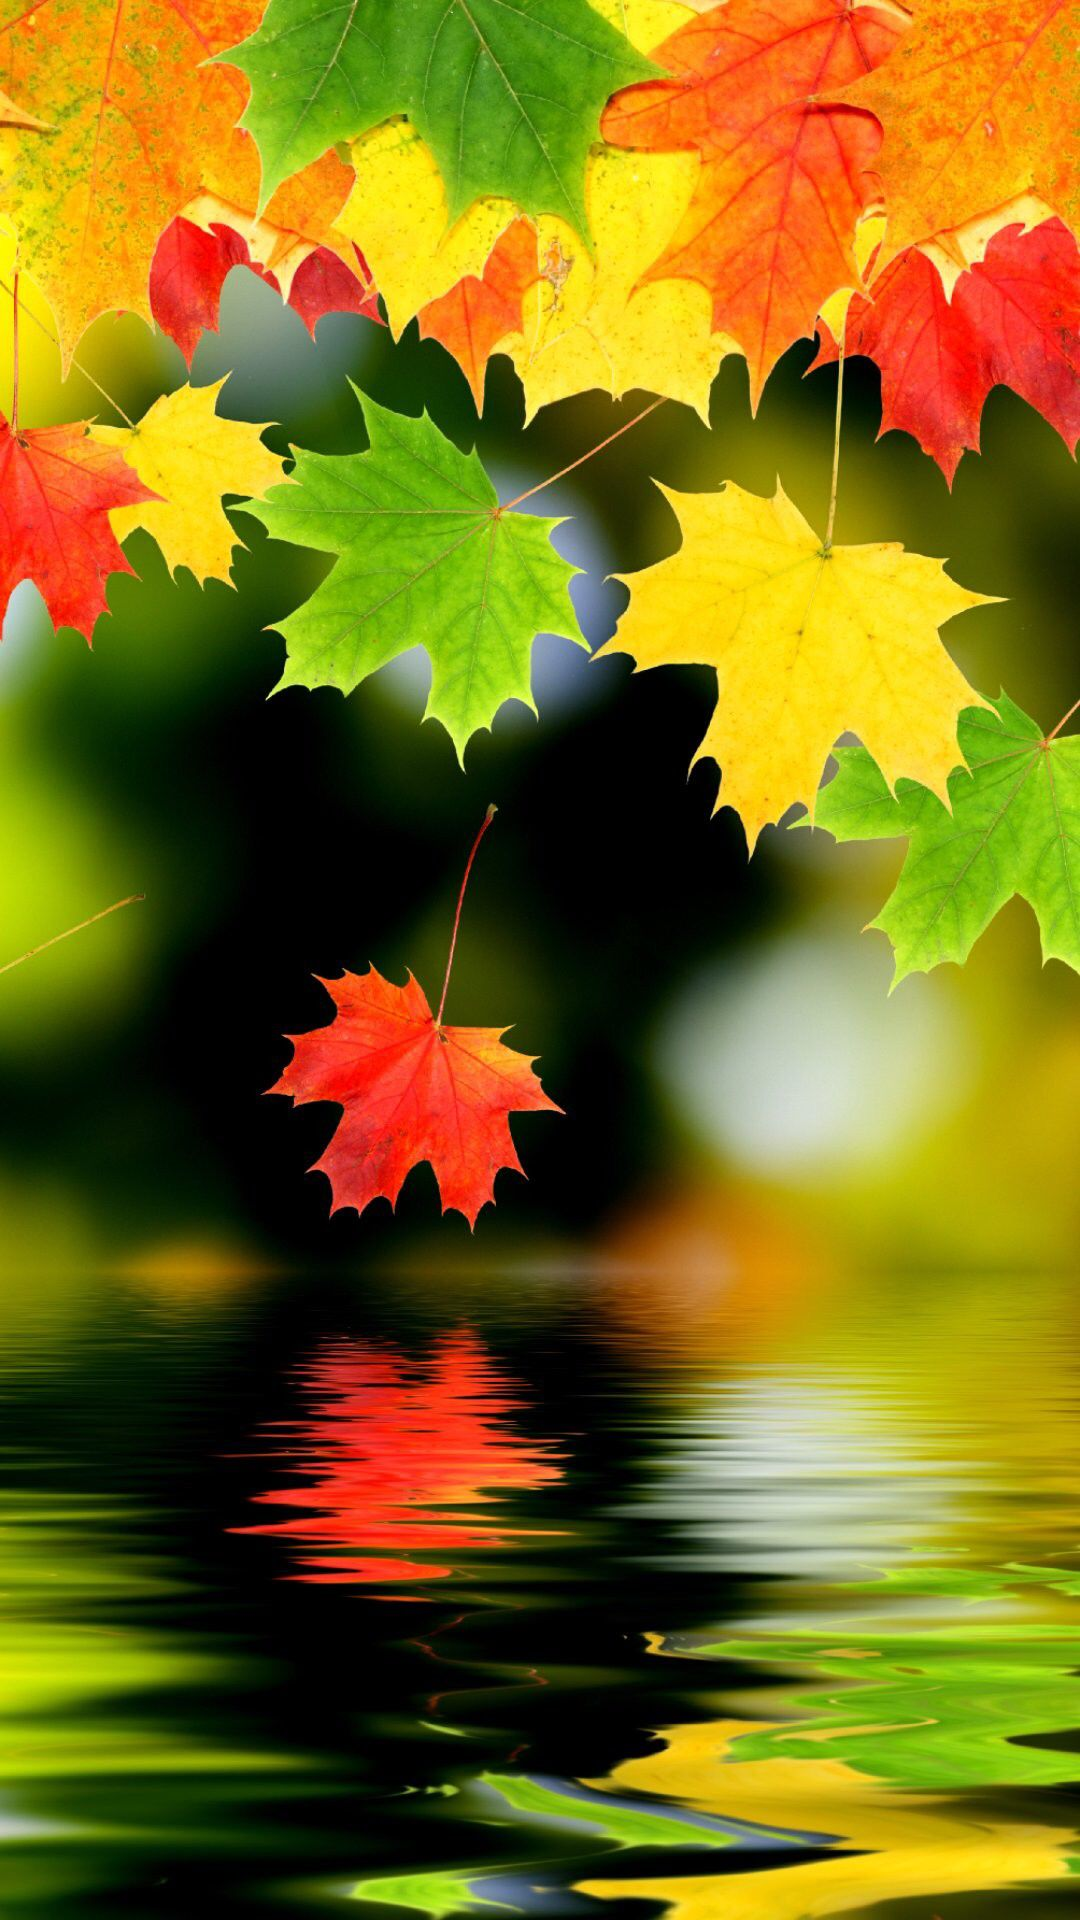 Image From Http Fashion Qkiz Com Uploads 1409 17 Au Autumn iphone 6 plus wallpaper nature iphone 6 plus アートフォト 紅葉 景色 水彩画のアート